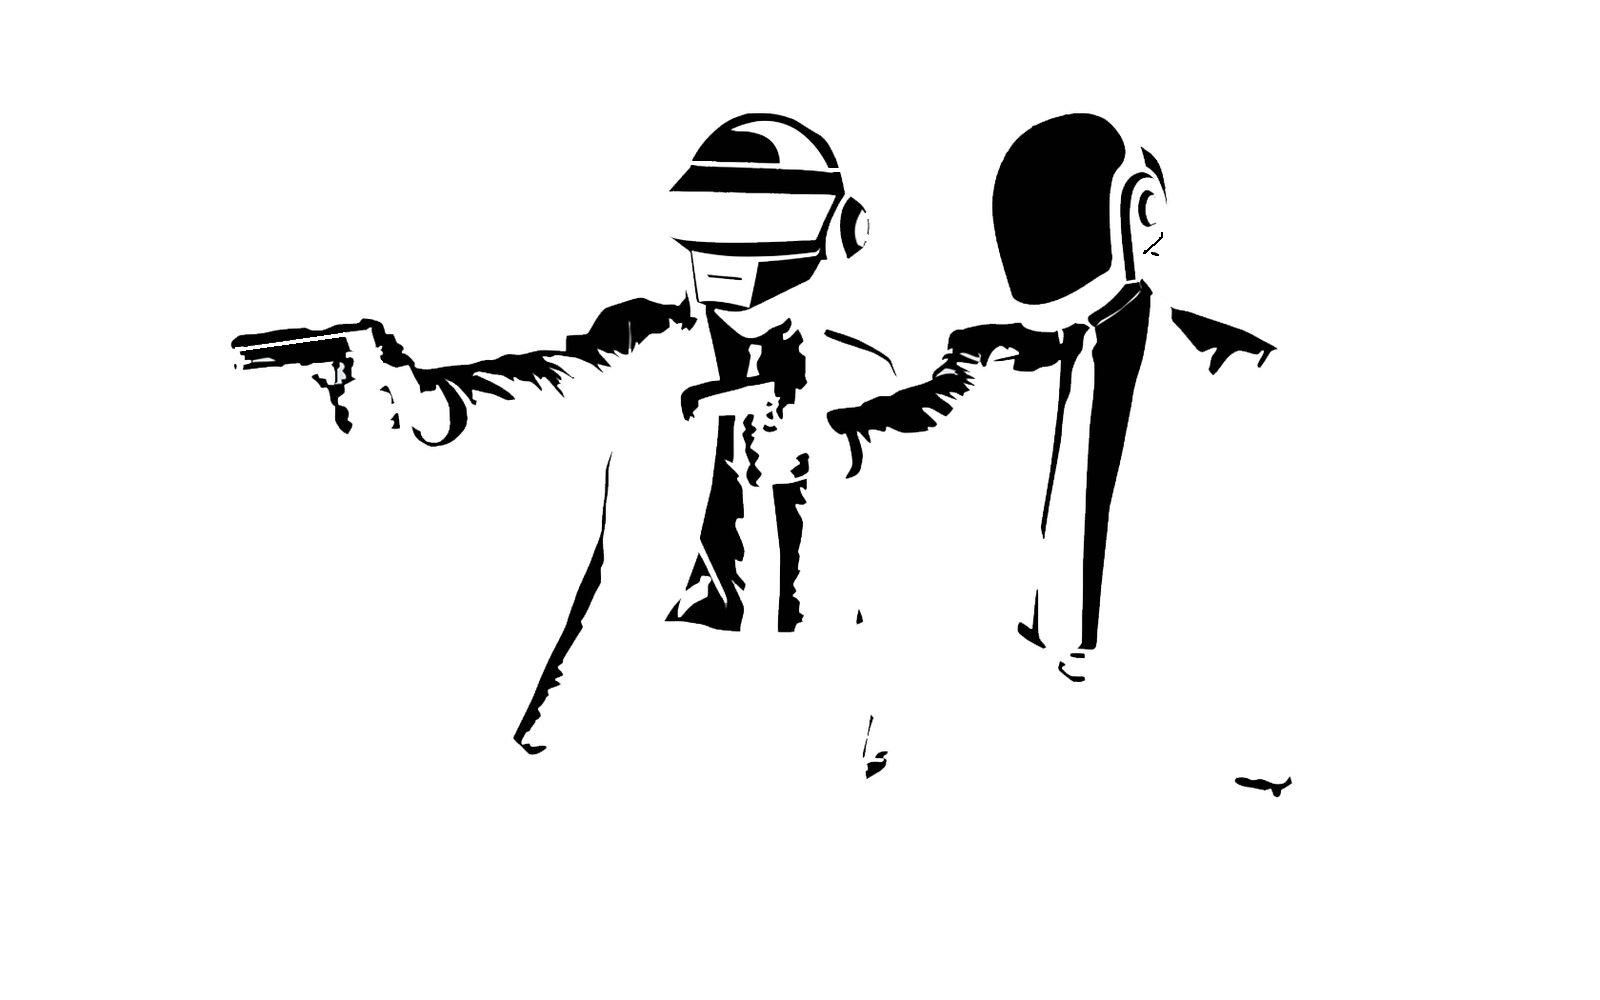 graphic regarding Gun Stencils Printable called Futuristic Guys With Guns Stencils stencils within just 2019